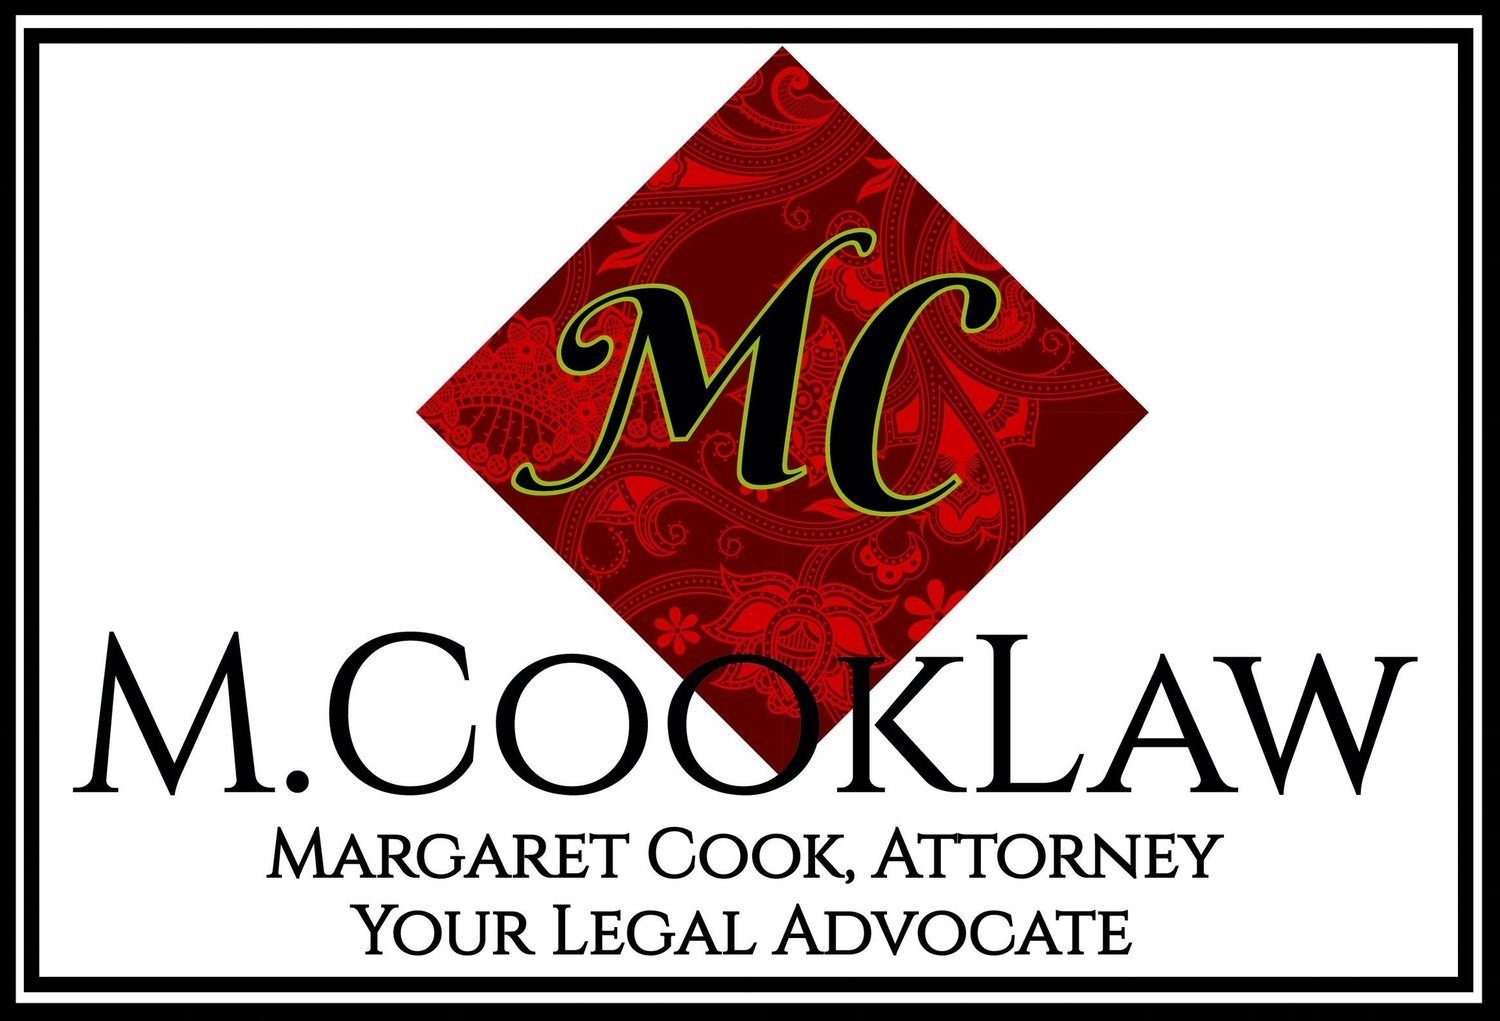 M. Cook Law